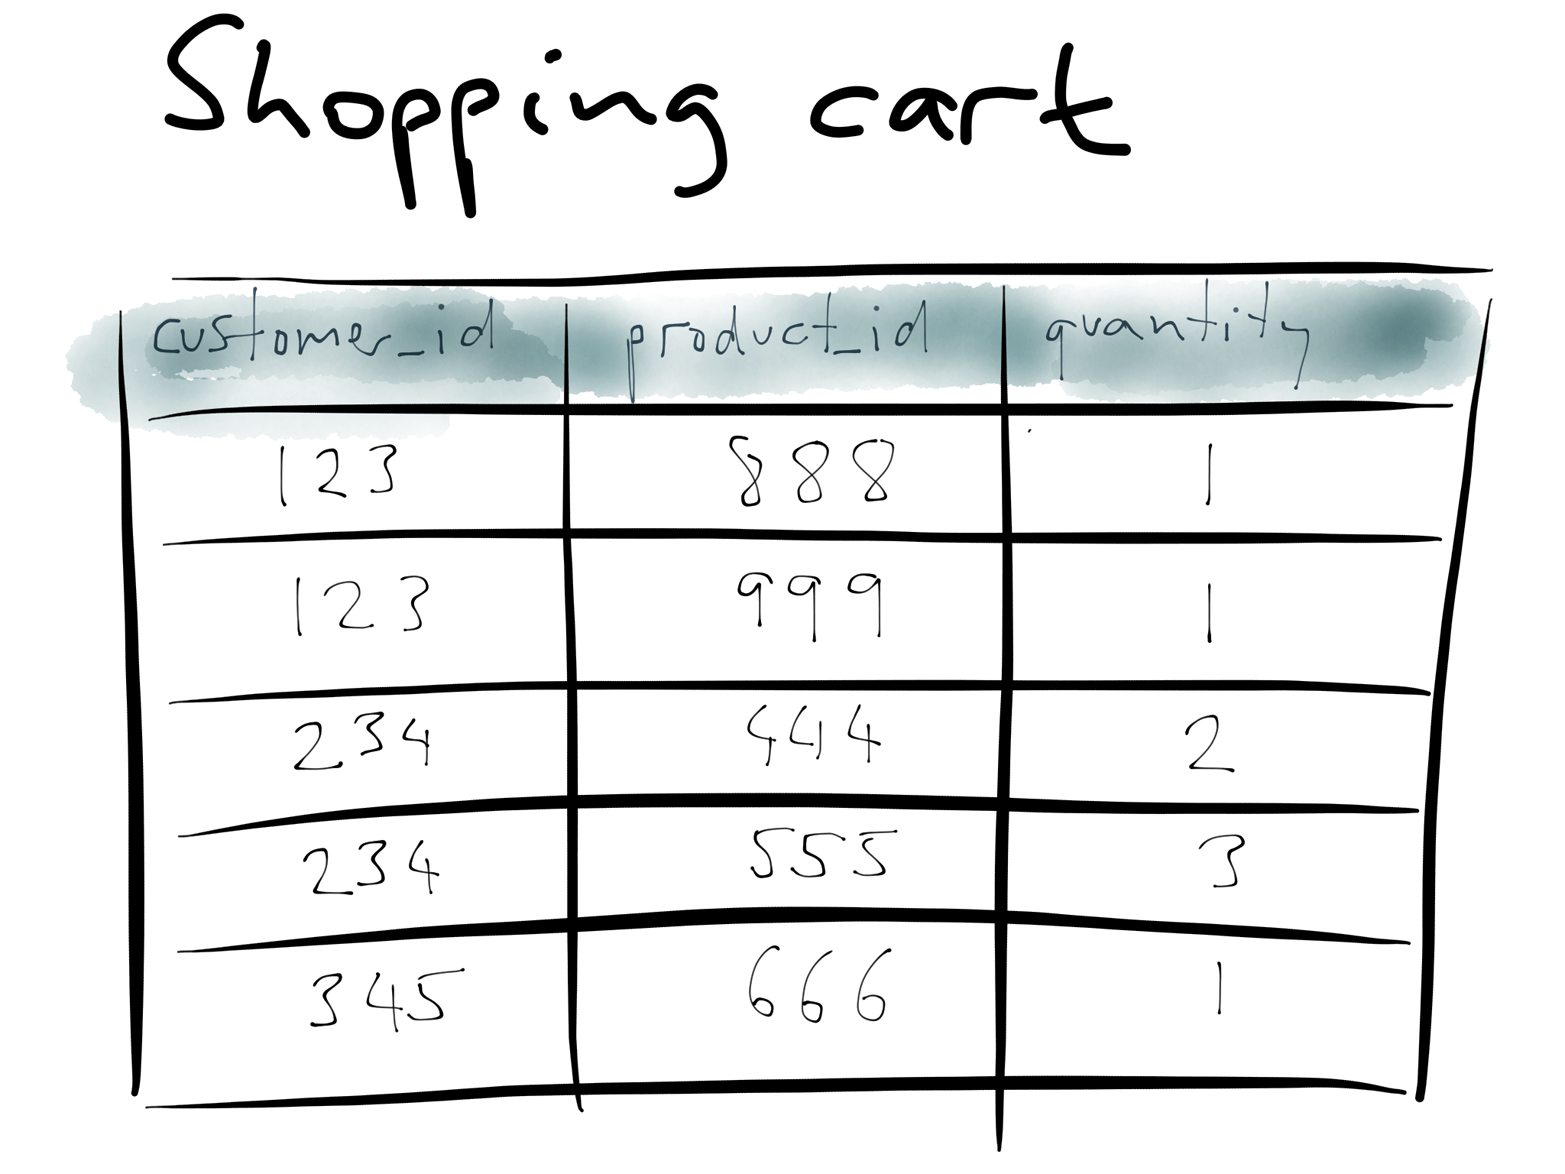 Example database: a shopping cart in a traditional relational schema.